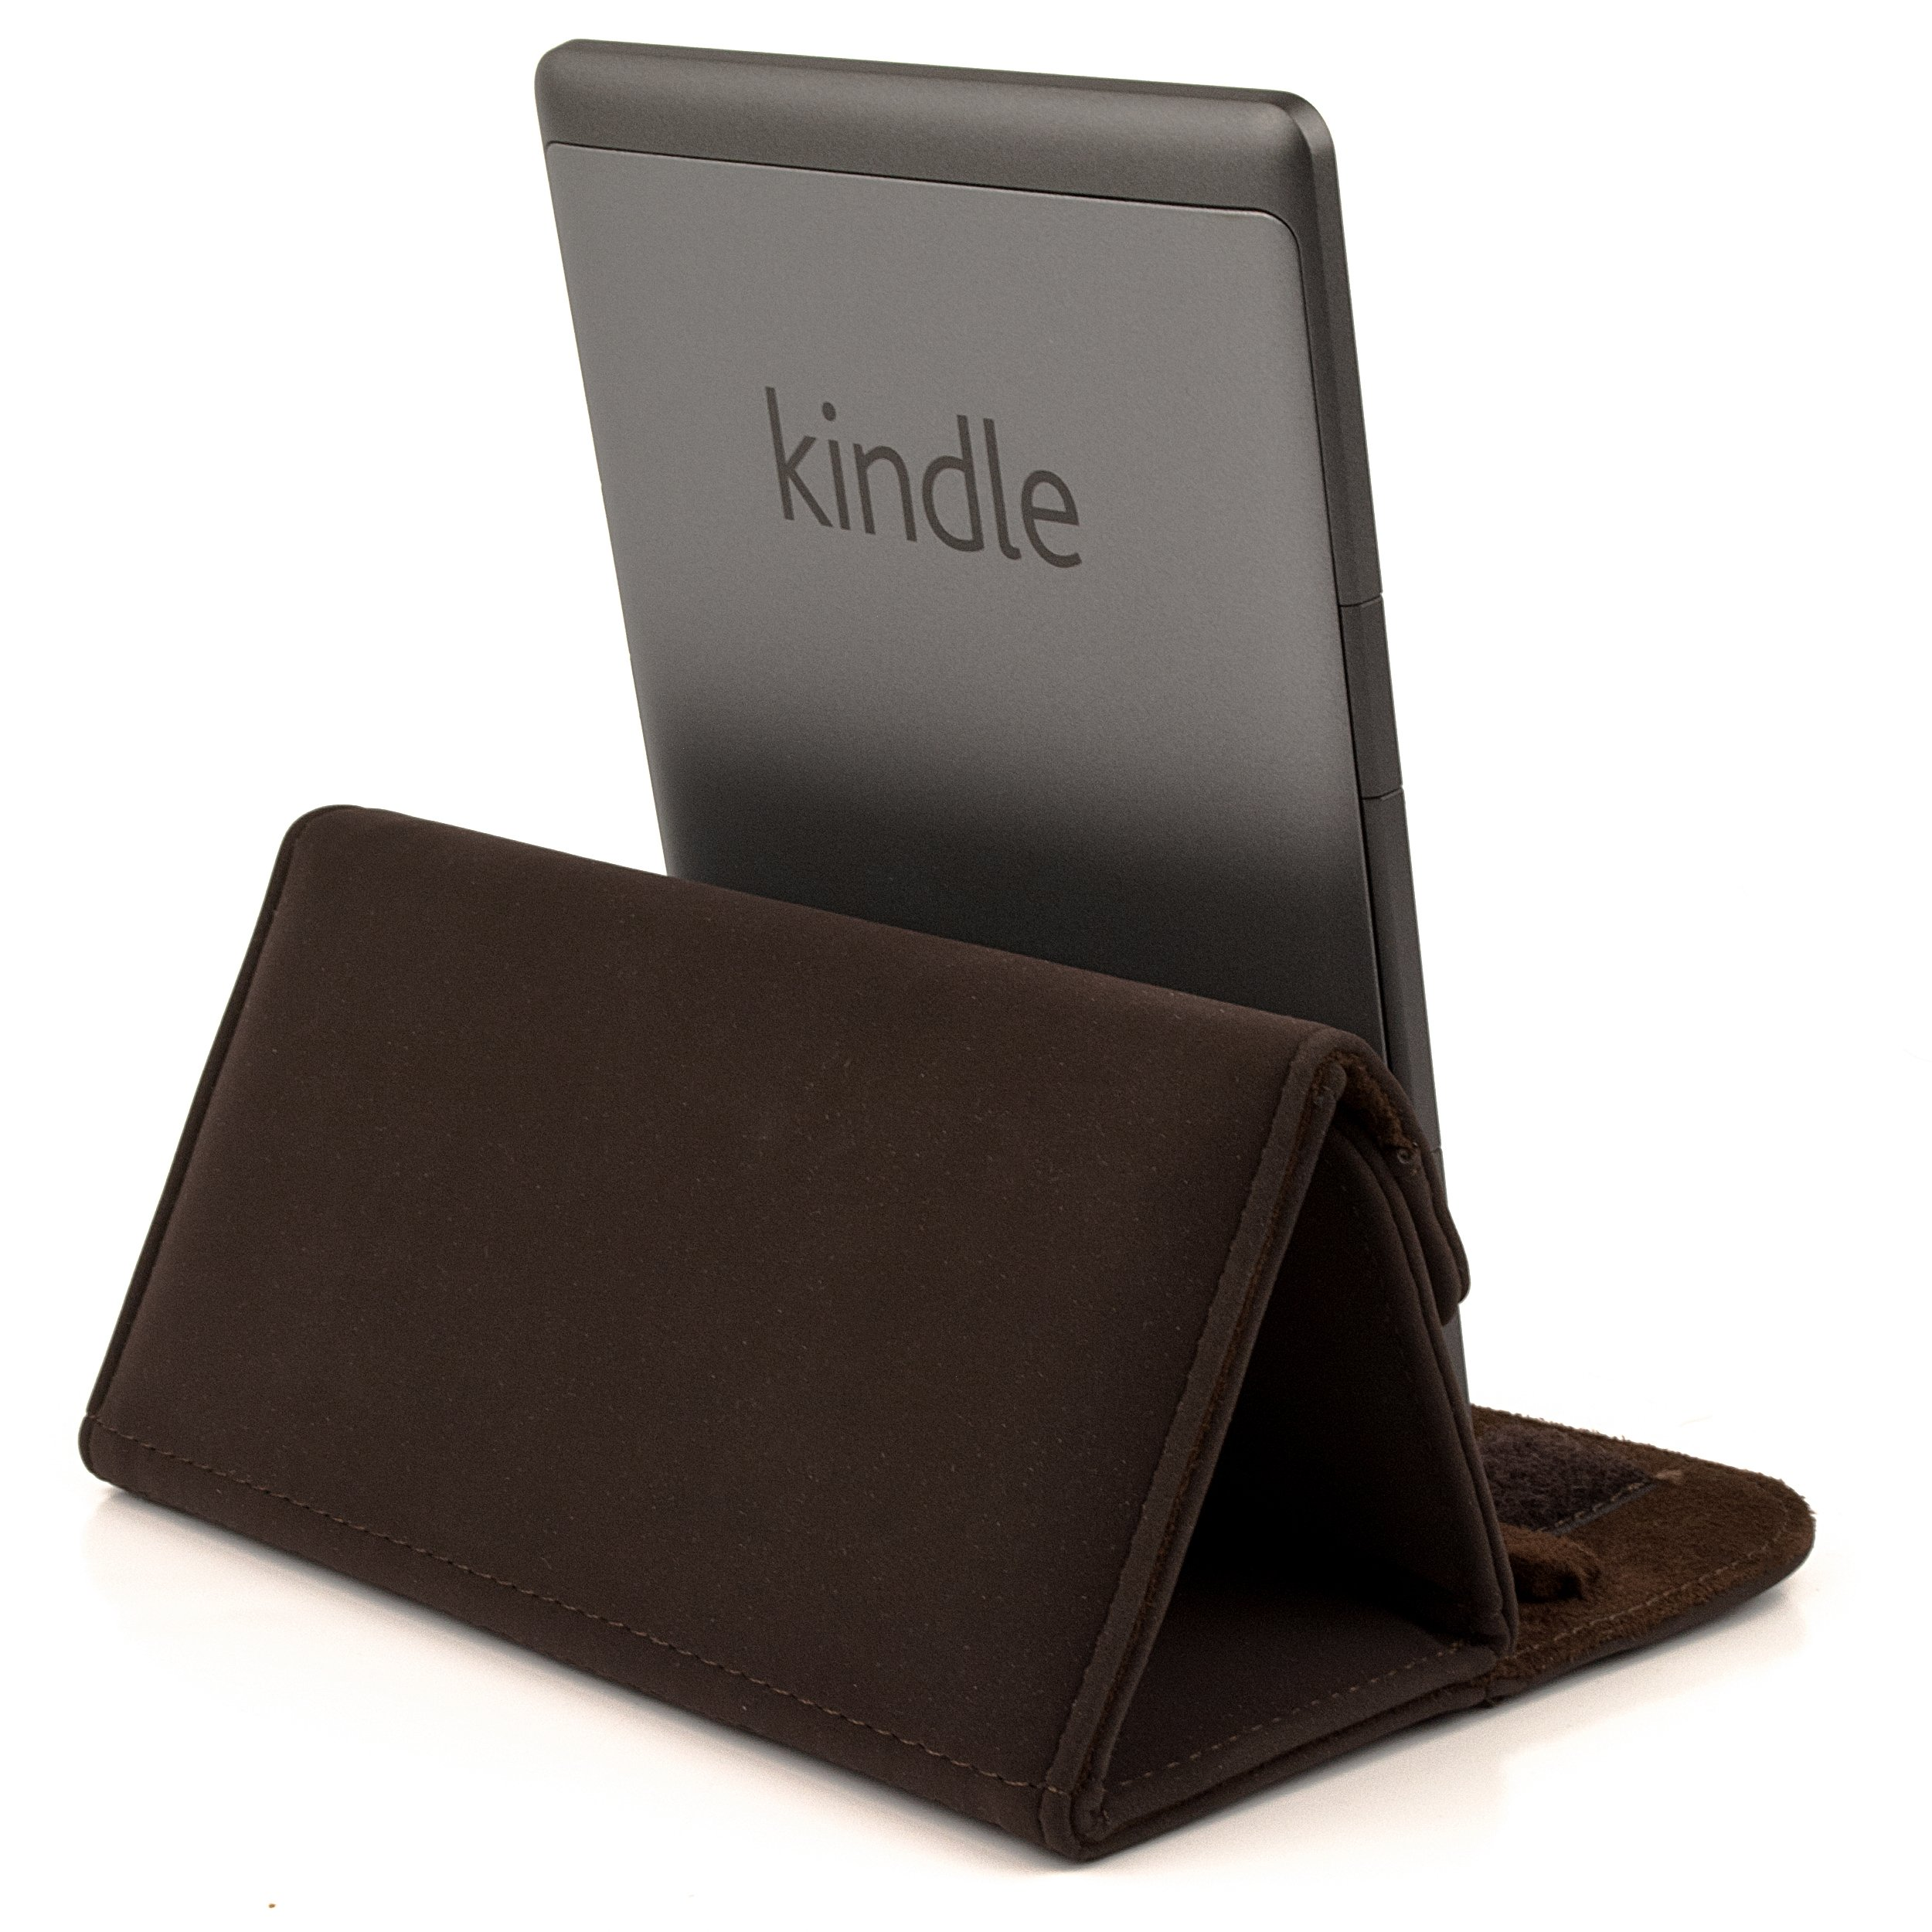 Smart Glove - Brown Premium Durable Leather Cover Sleeve Carrying Case can easily be converted to a stand For Amazon Kindle Touch (Wi-Fi 6'' E Ink Display)